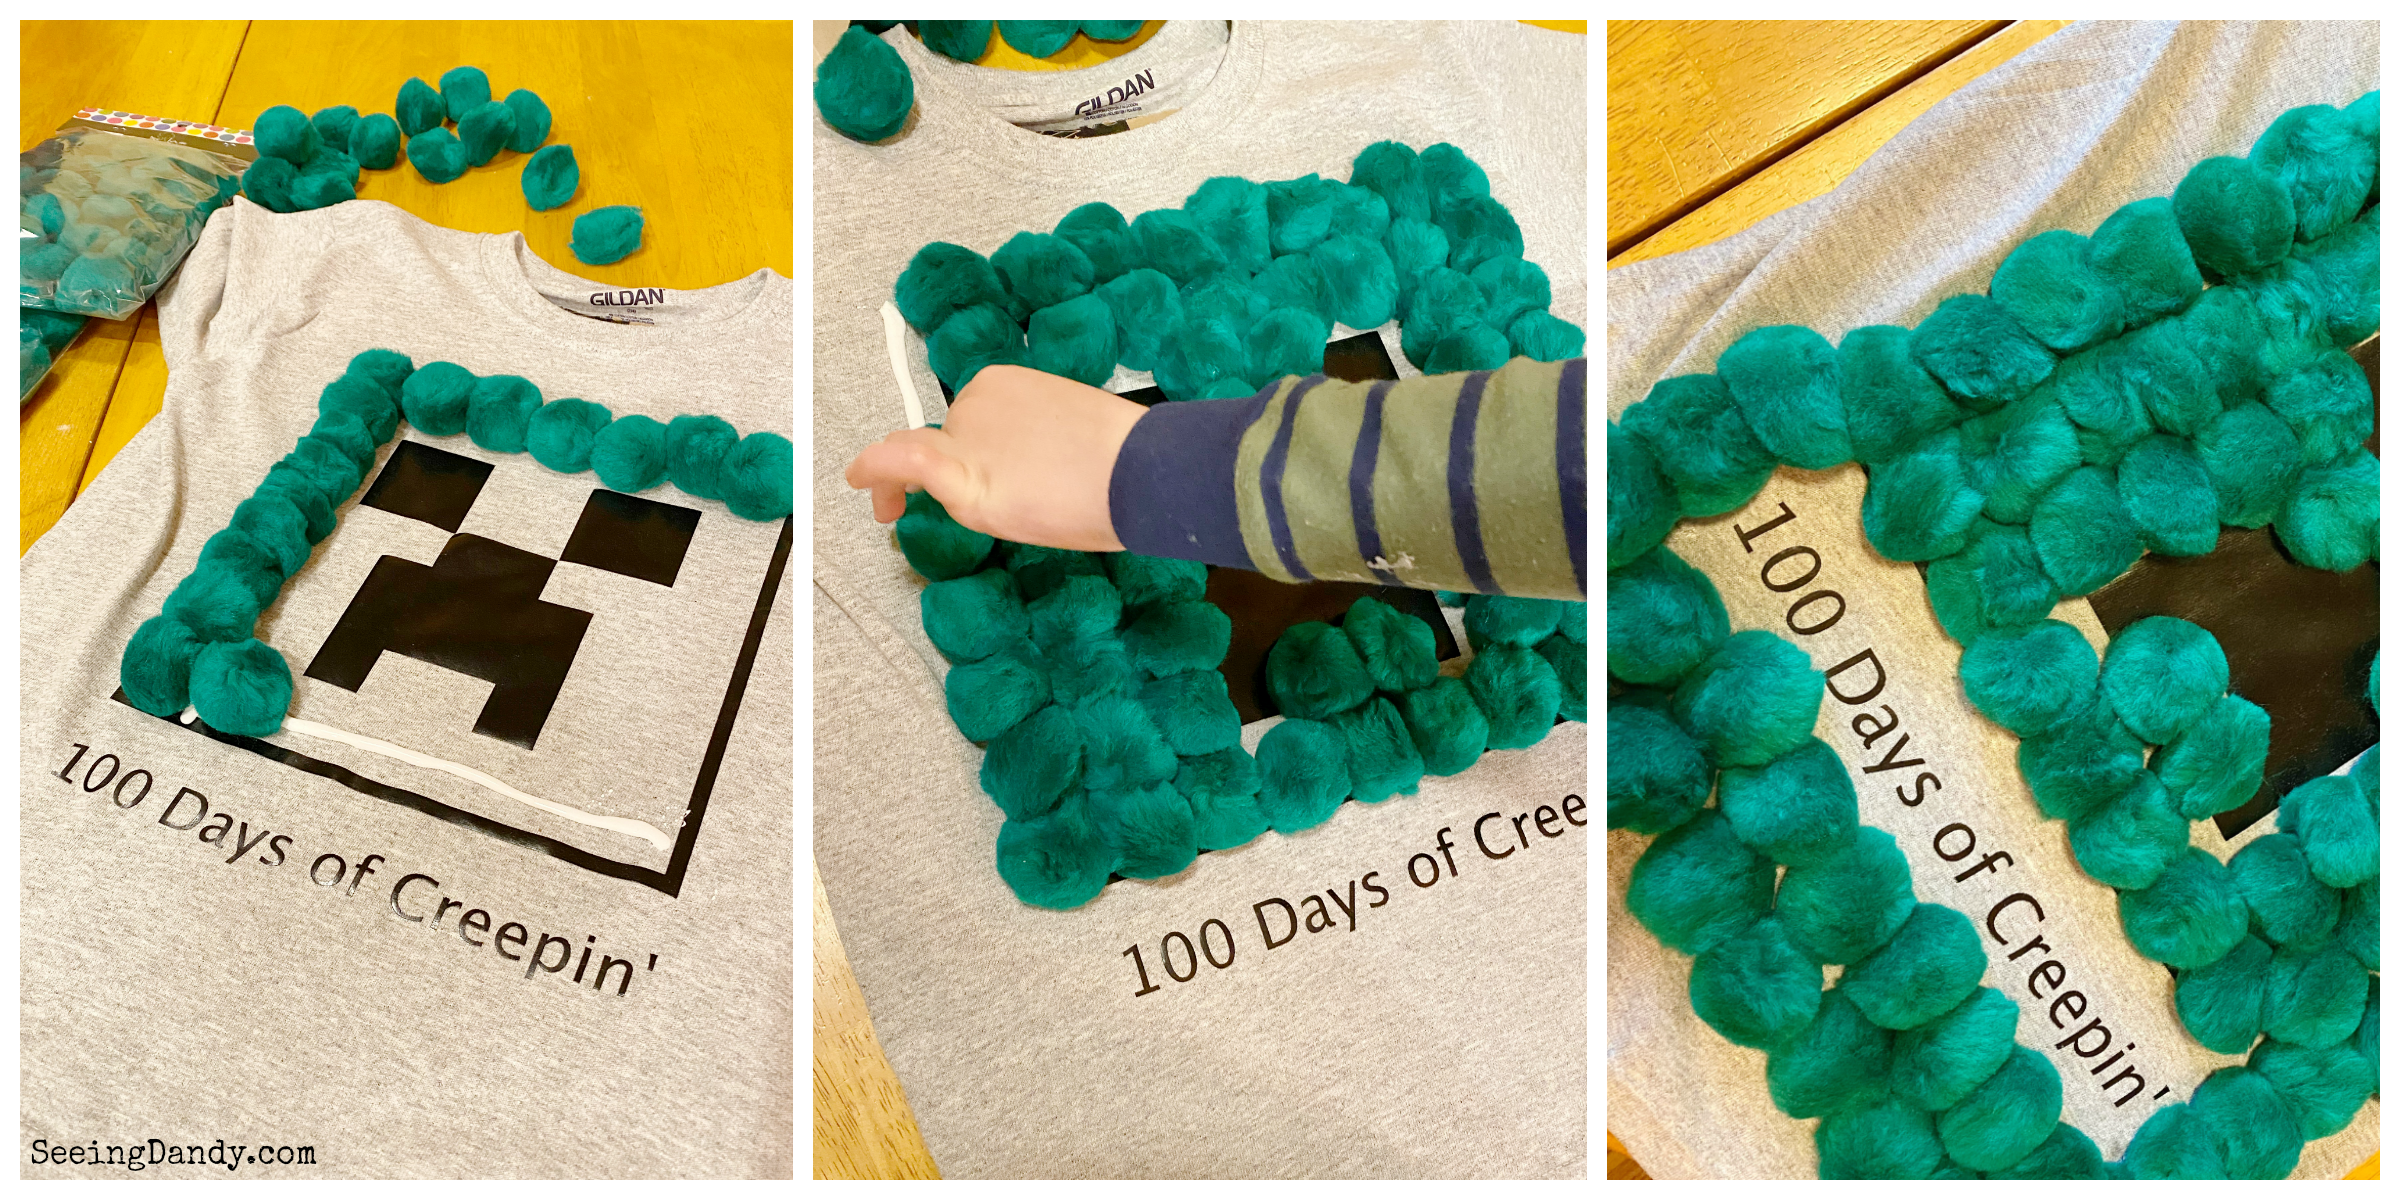 Creating DIY shirts for 100th day of school